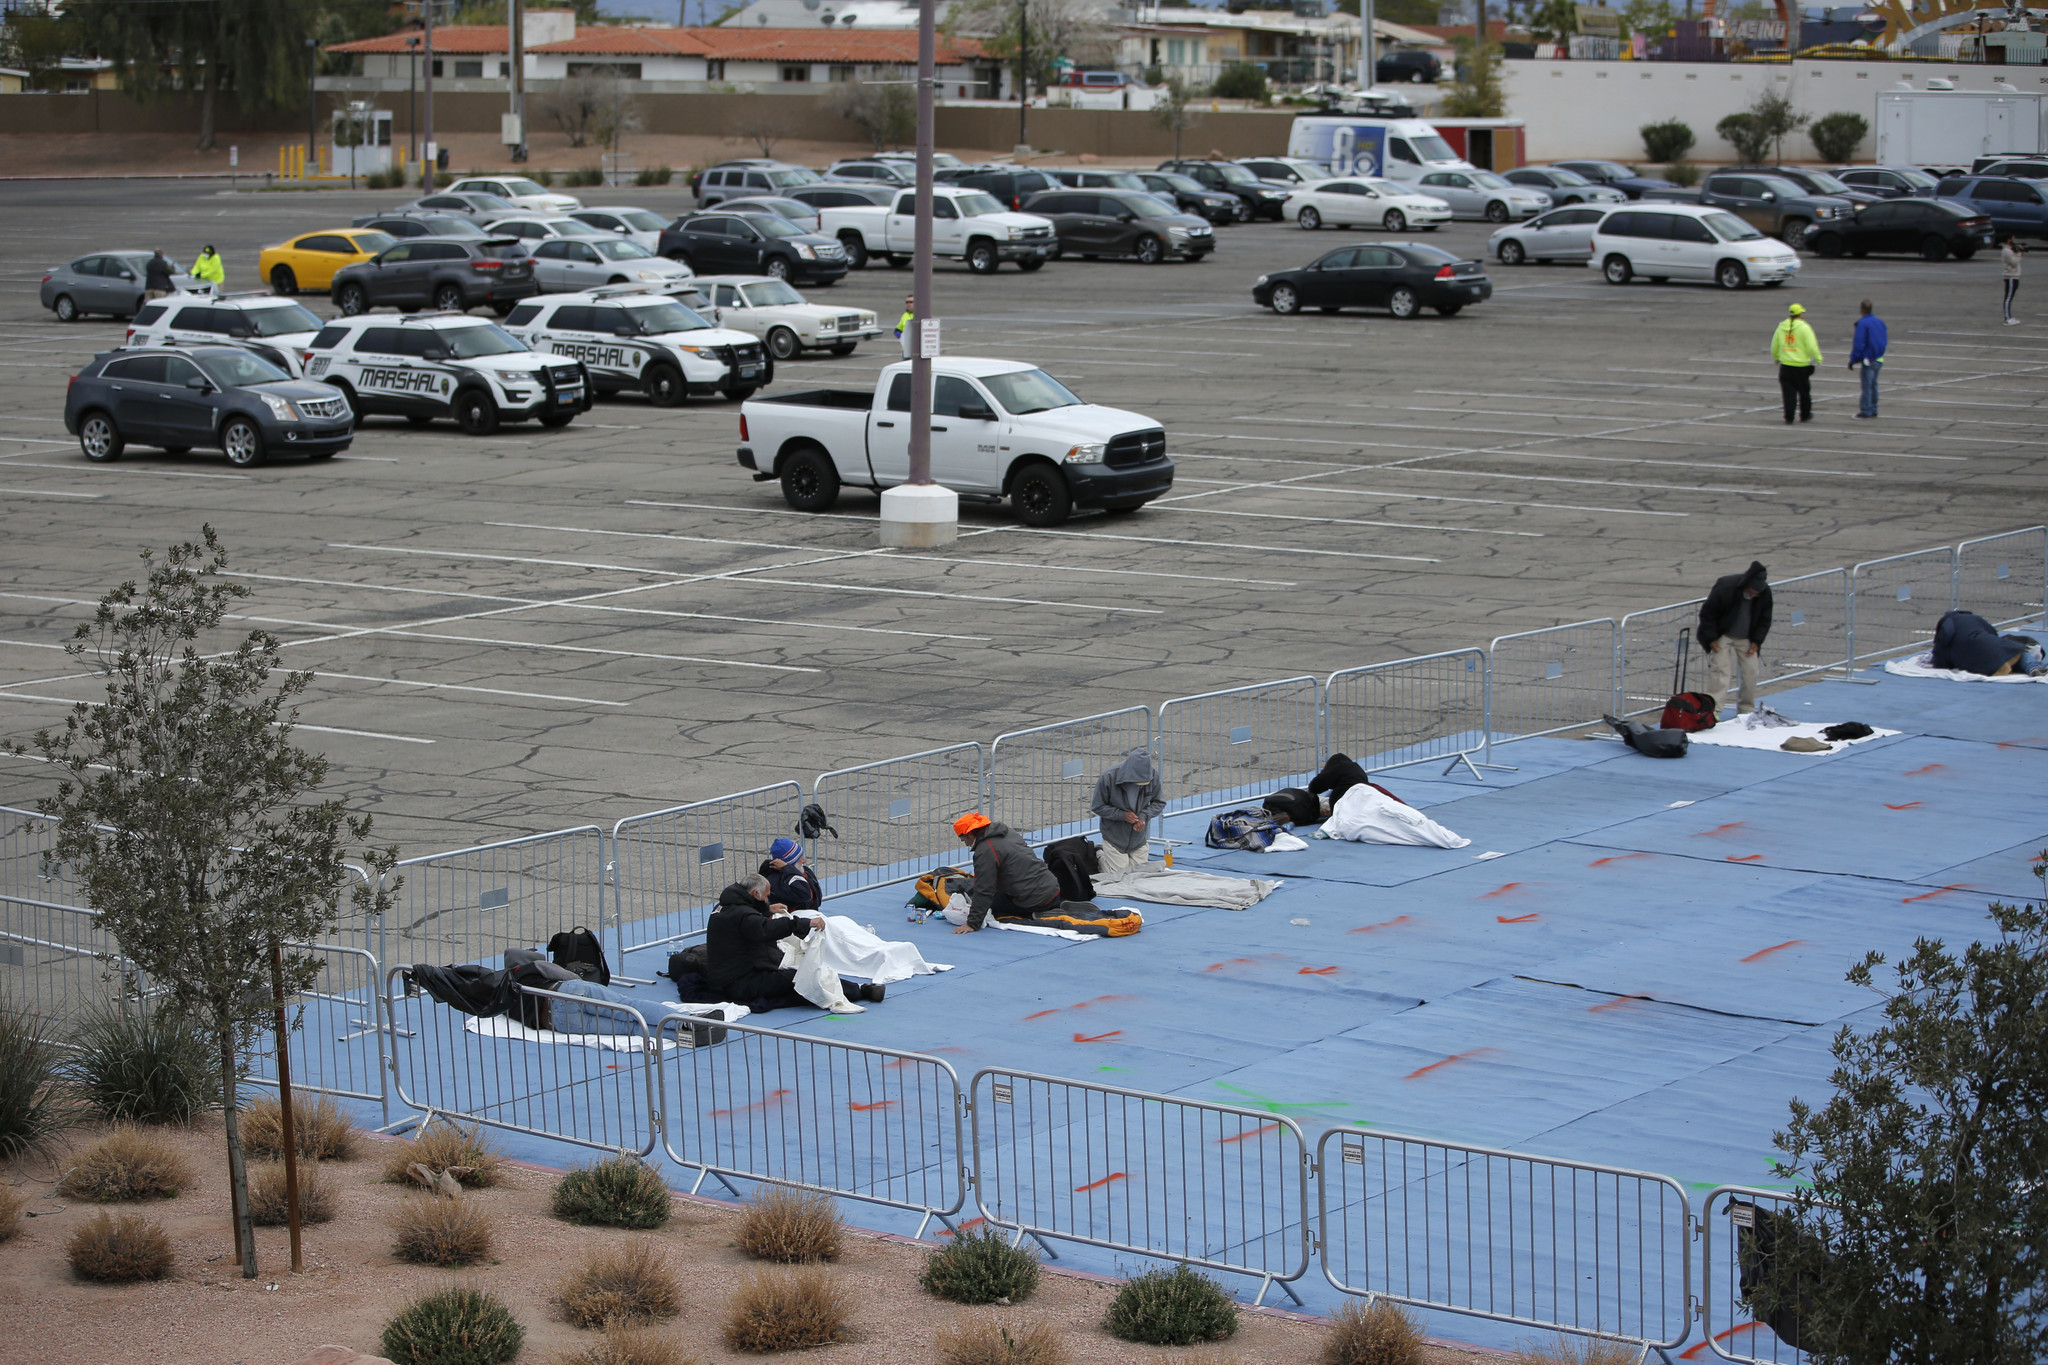 As Vegas hotels sit empty, the city's homeless sleep in parking lots during coronavirus pandemic